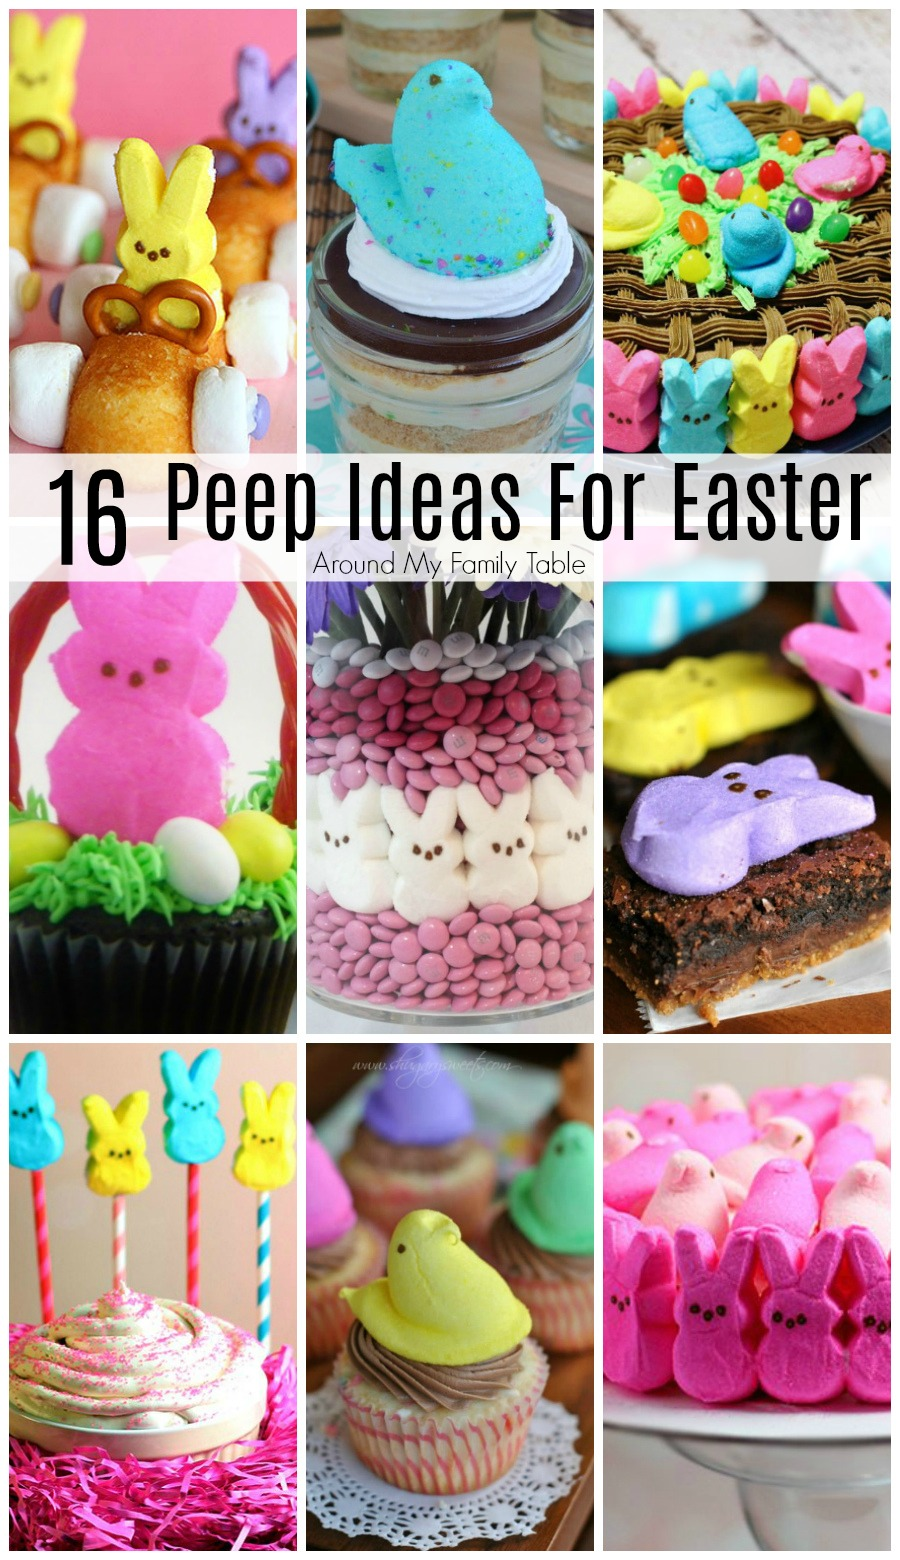 Hey Peeps fans! You need these 16 Peeps Ideas for Easter to take you Peep addiction to a new level.